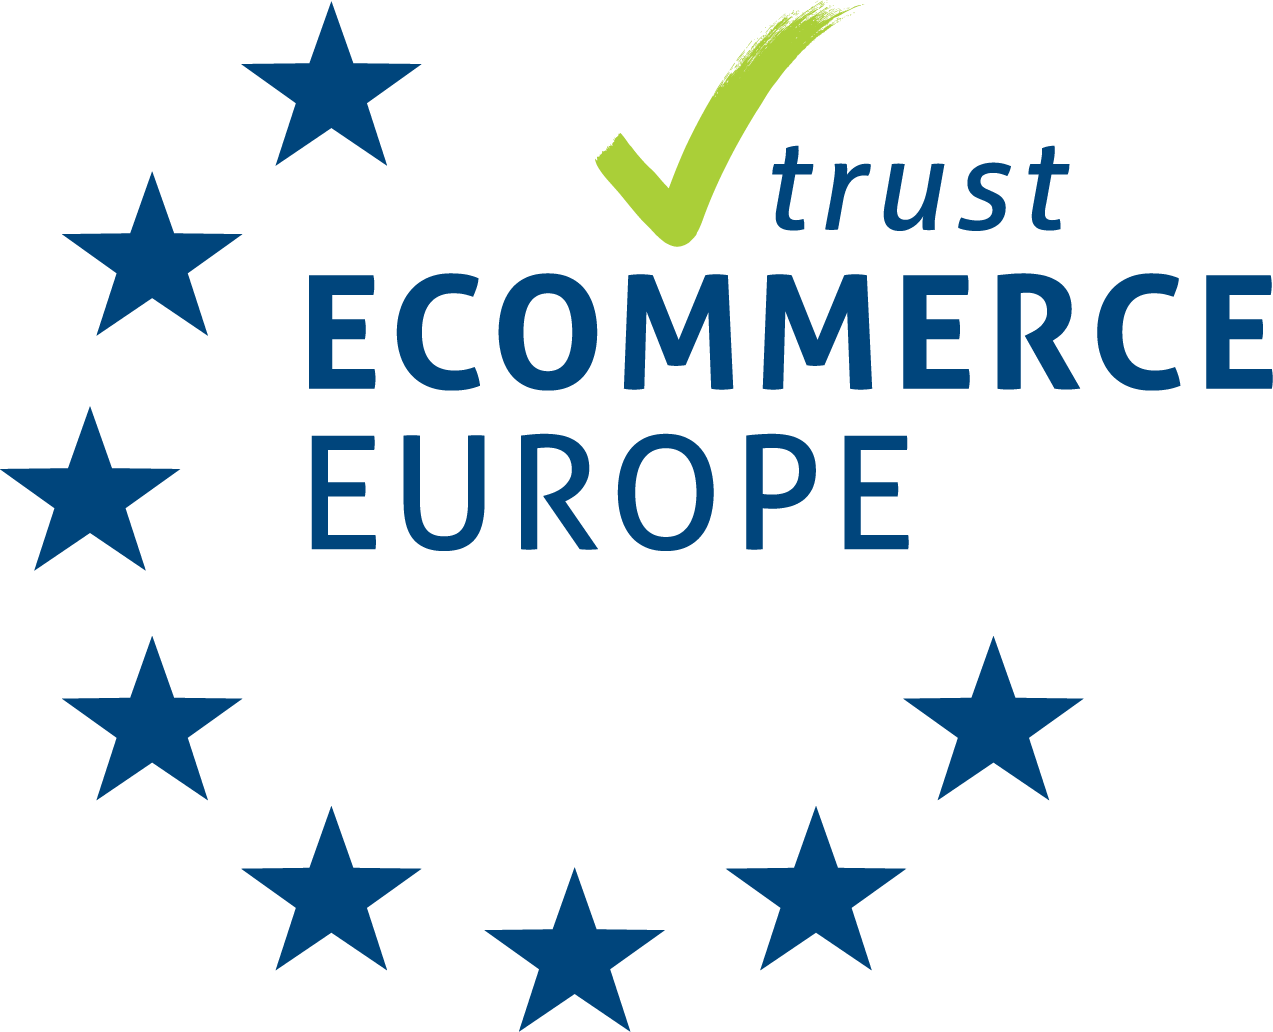 E-commerce Europe trustmark